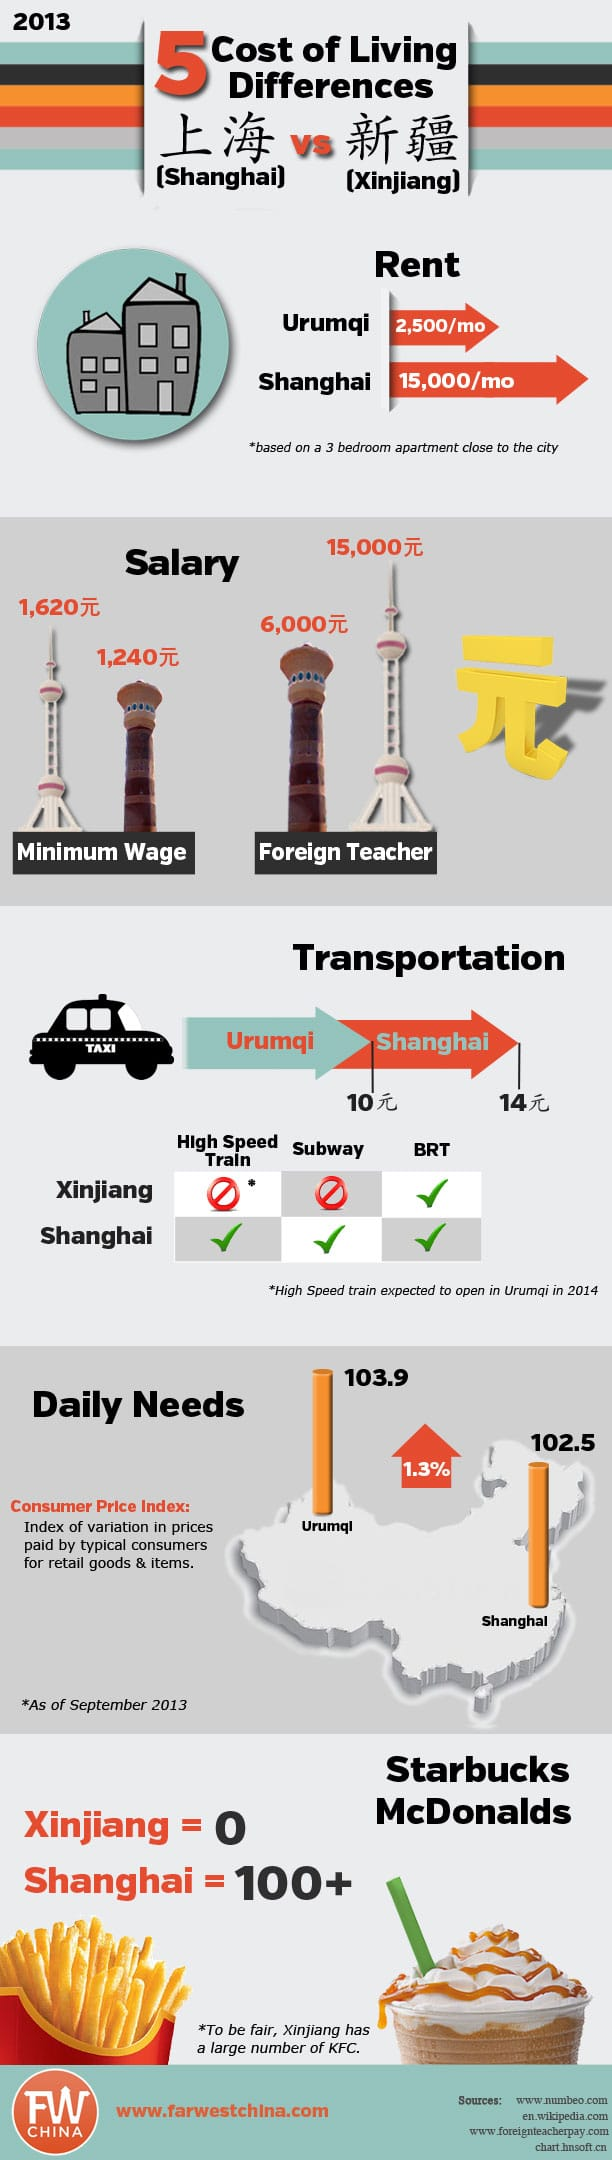 Cost of Living: Xinjiang 2013 - Infographic